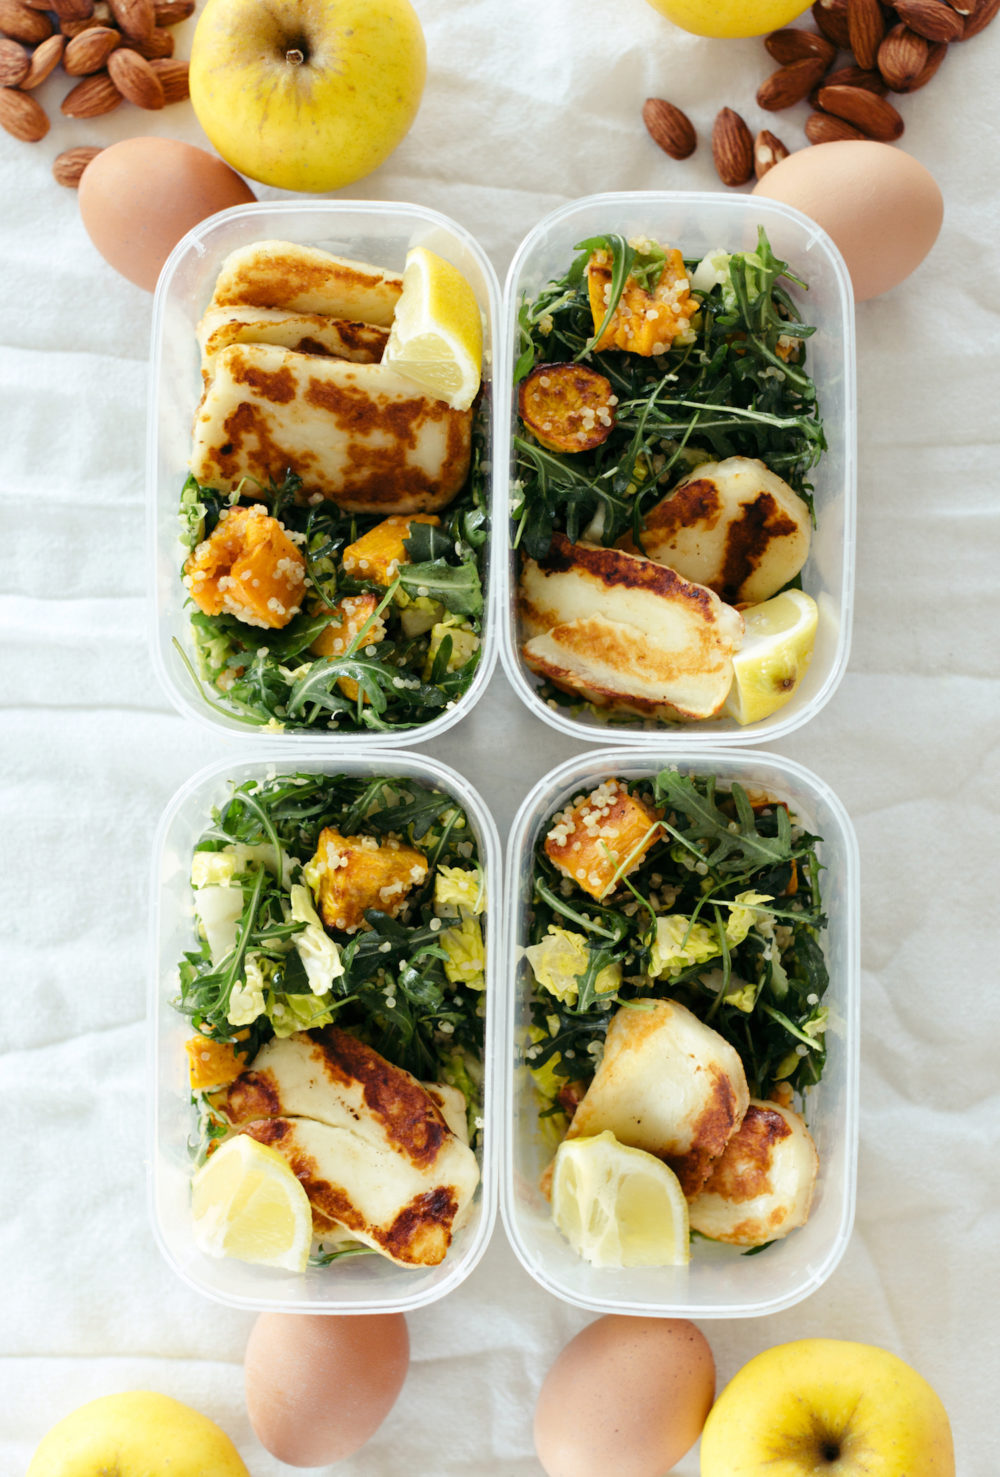 Meal-Prep Sweet Potato, Quinoa, Greens, & Halloumi (Bowl Option)